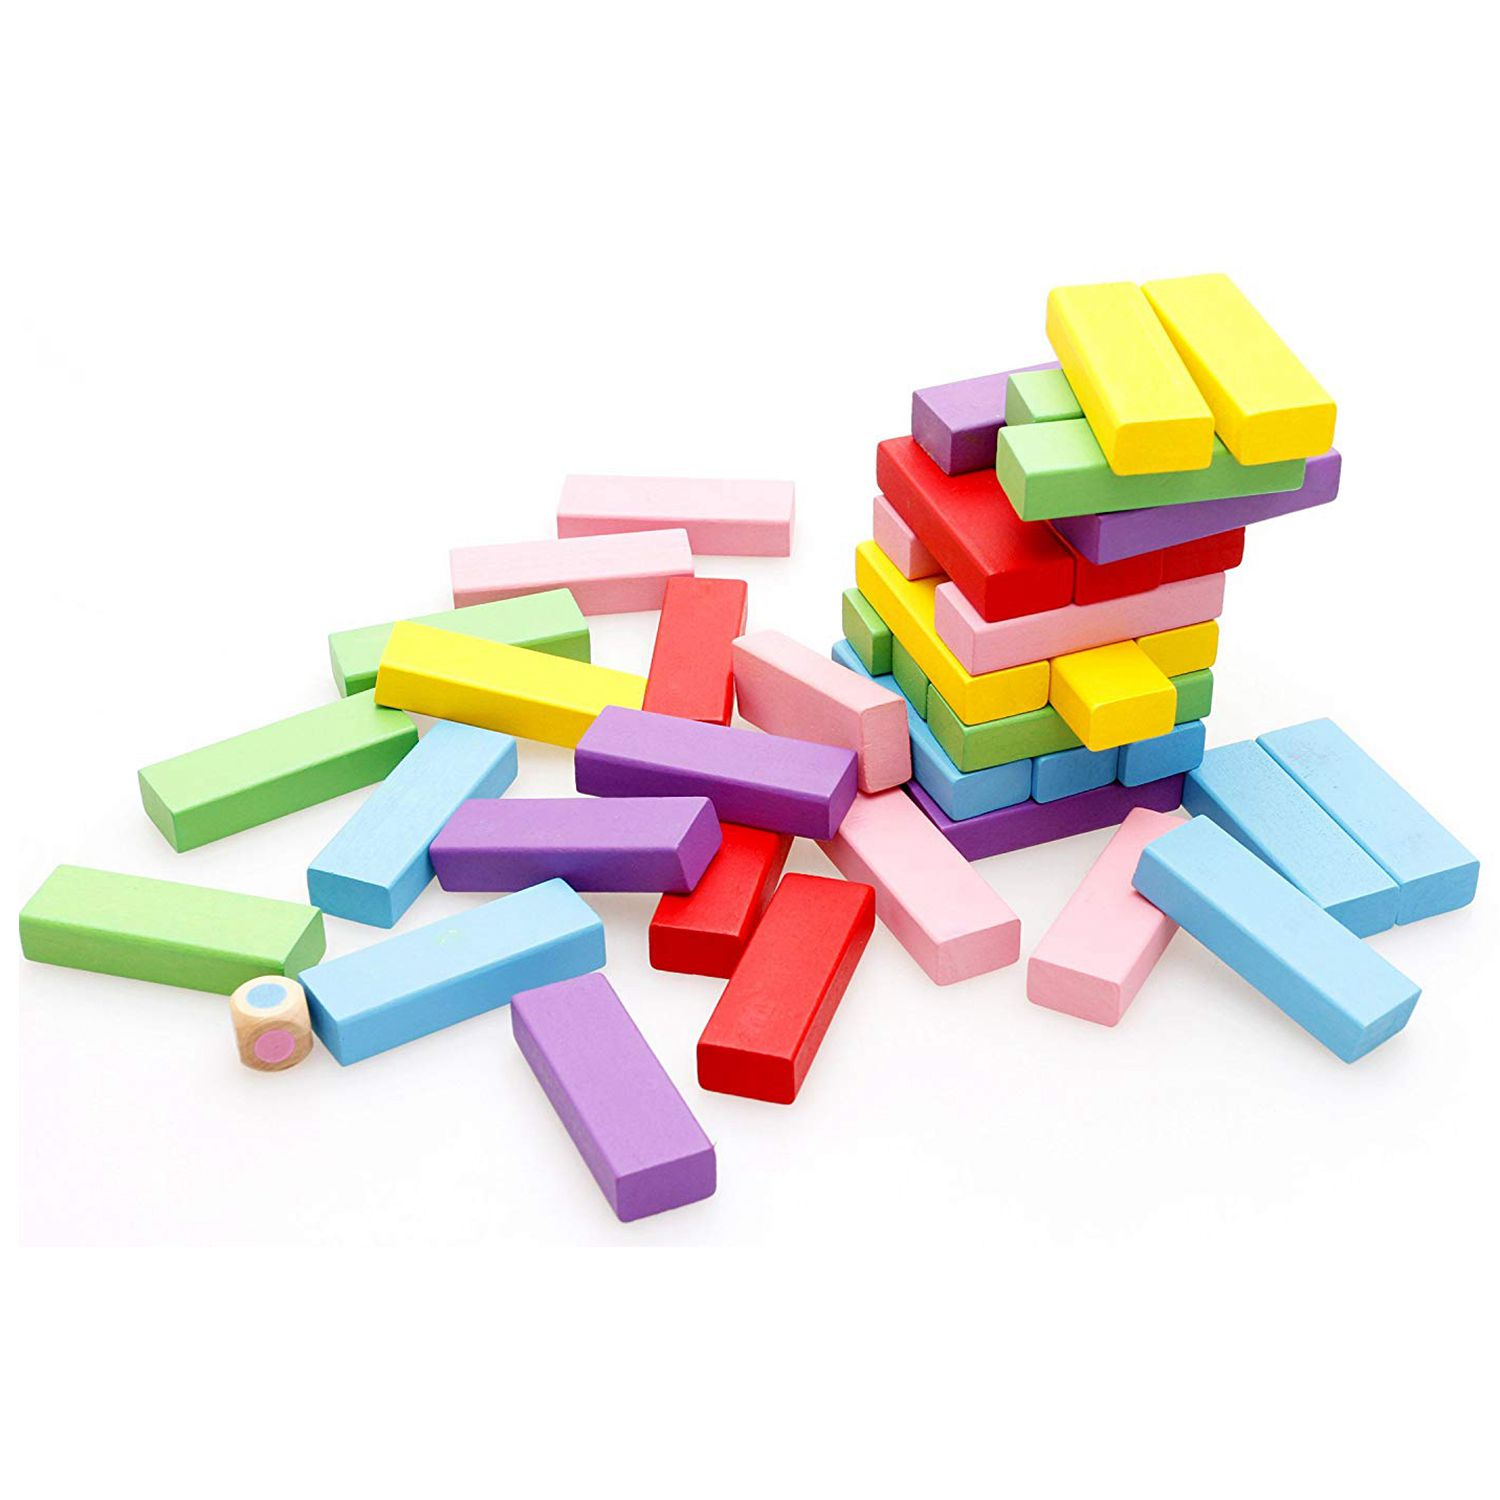 Wooden Stacking Board Games Building Blocks for Kids 48 Pieces in Blocks from Toys Hobbies